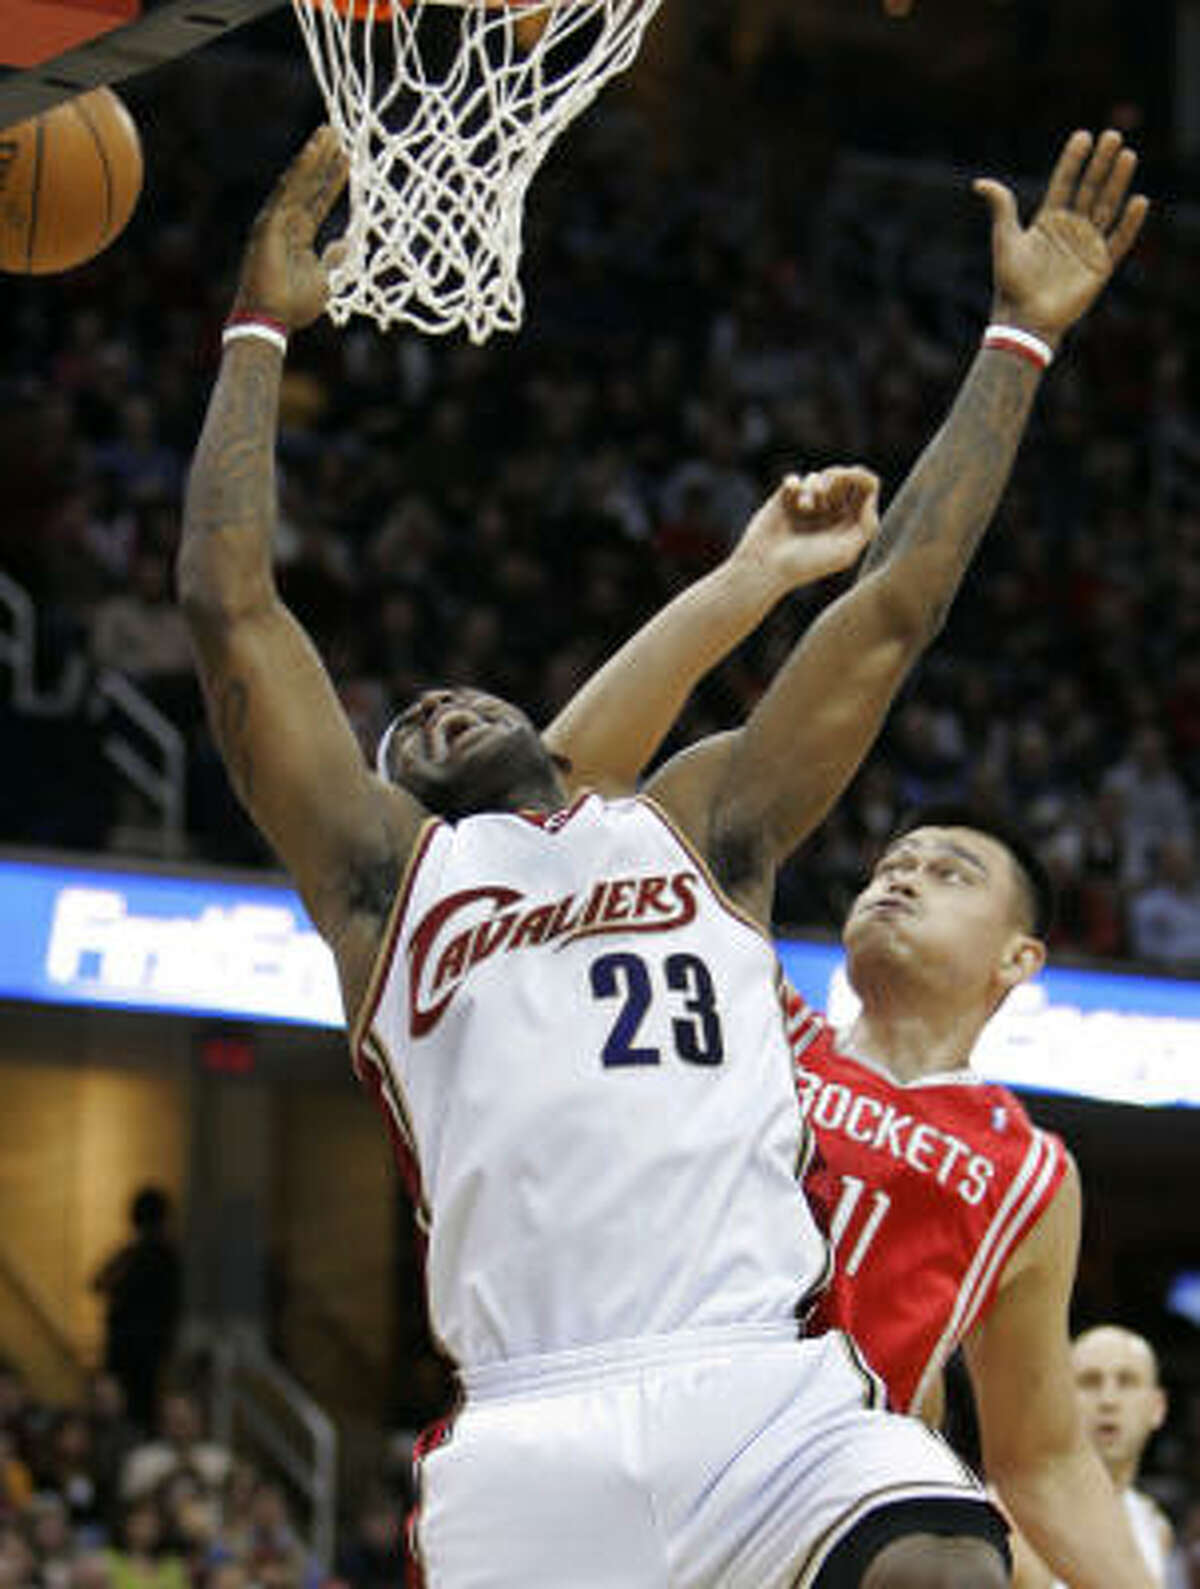 Cleveland Cavaliers forward LeBron James has the ball knocked away by Houston Rockets' Yao Ming during the first quarter.